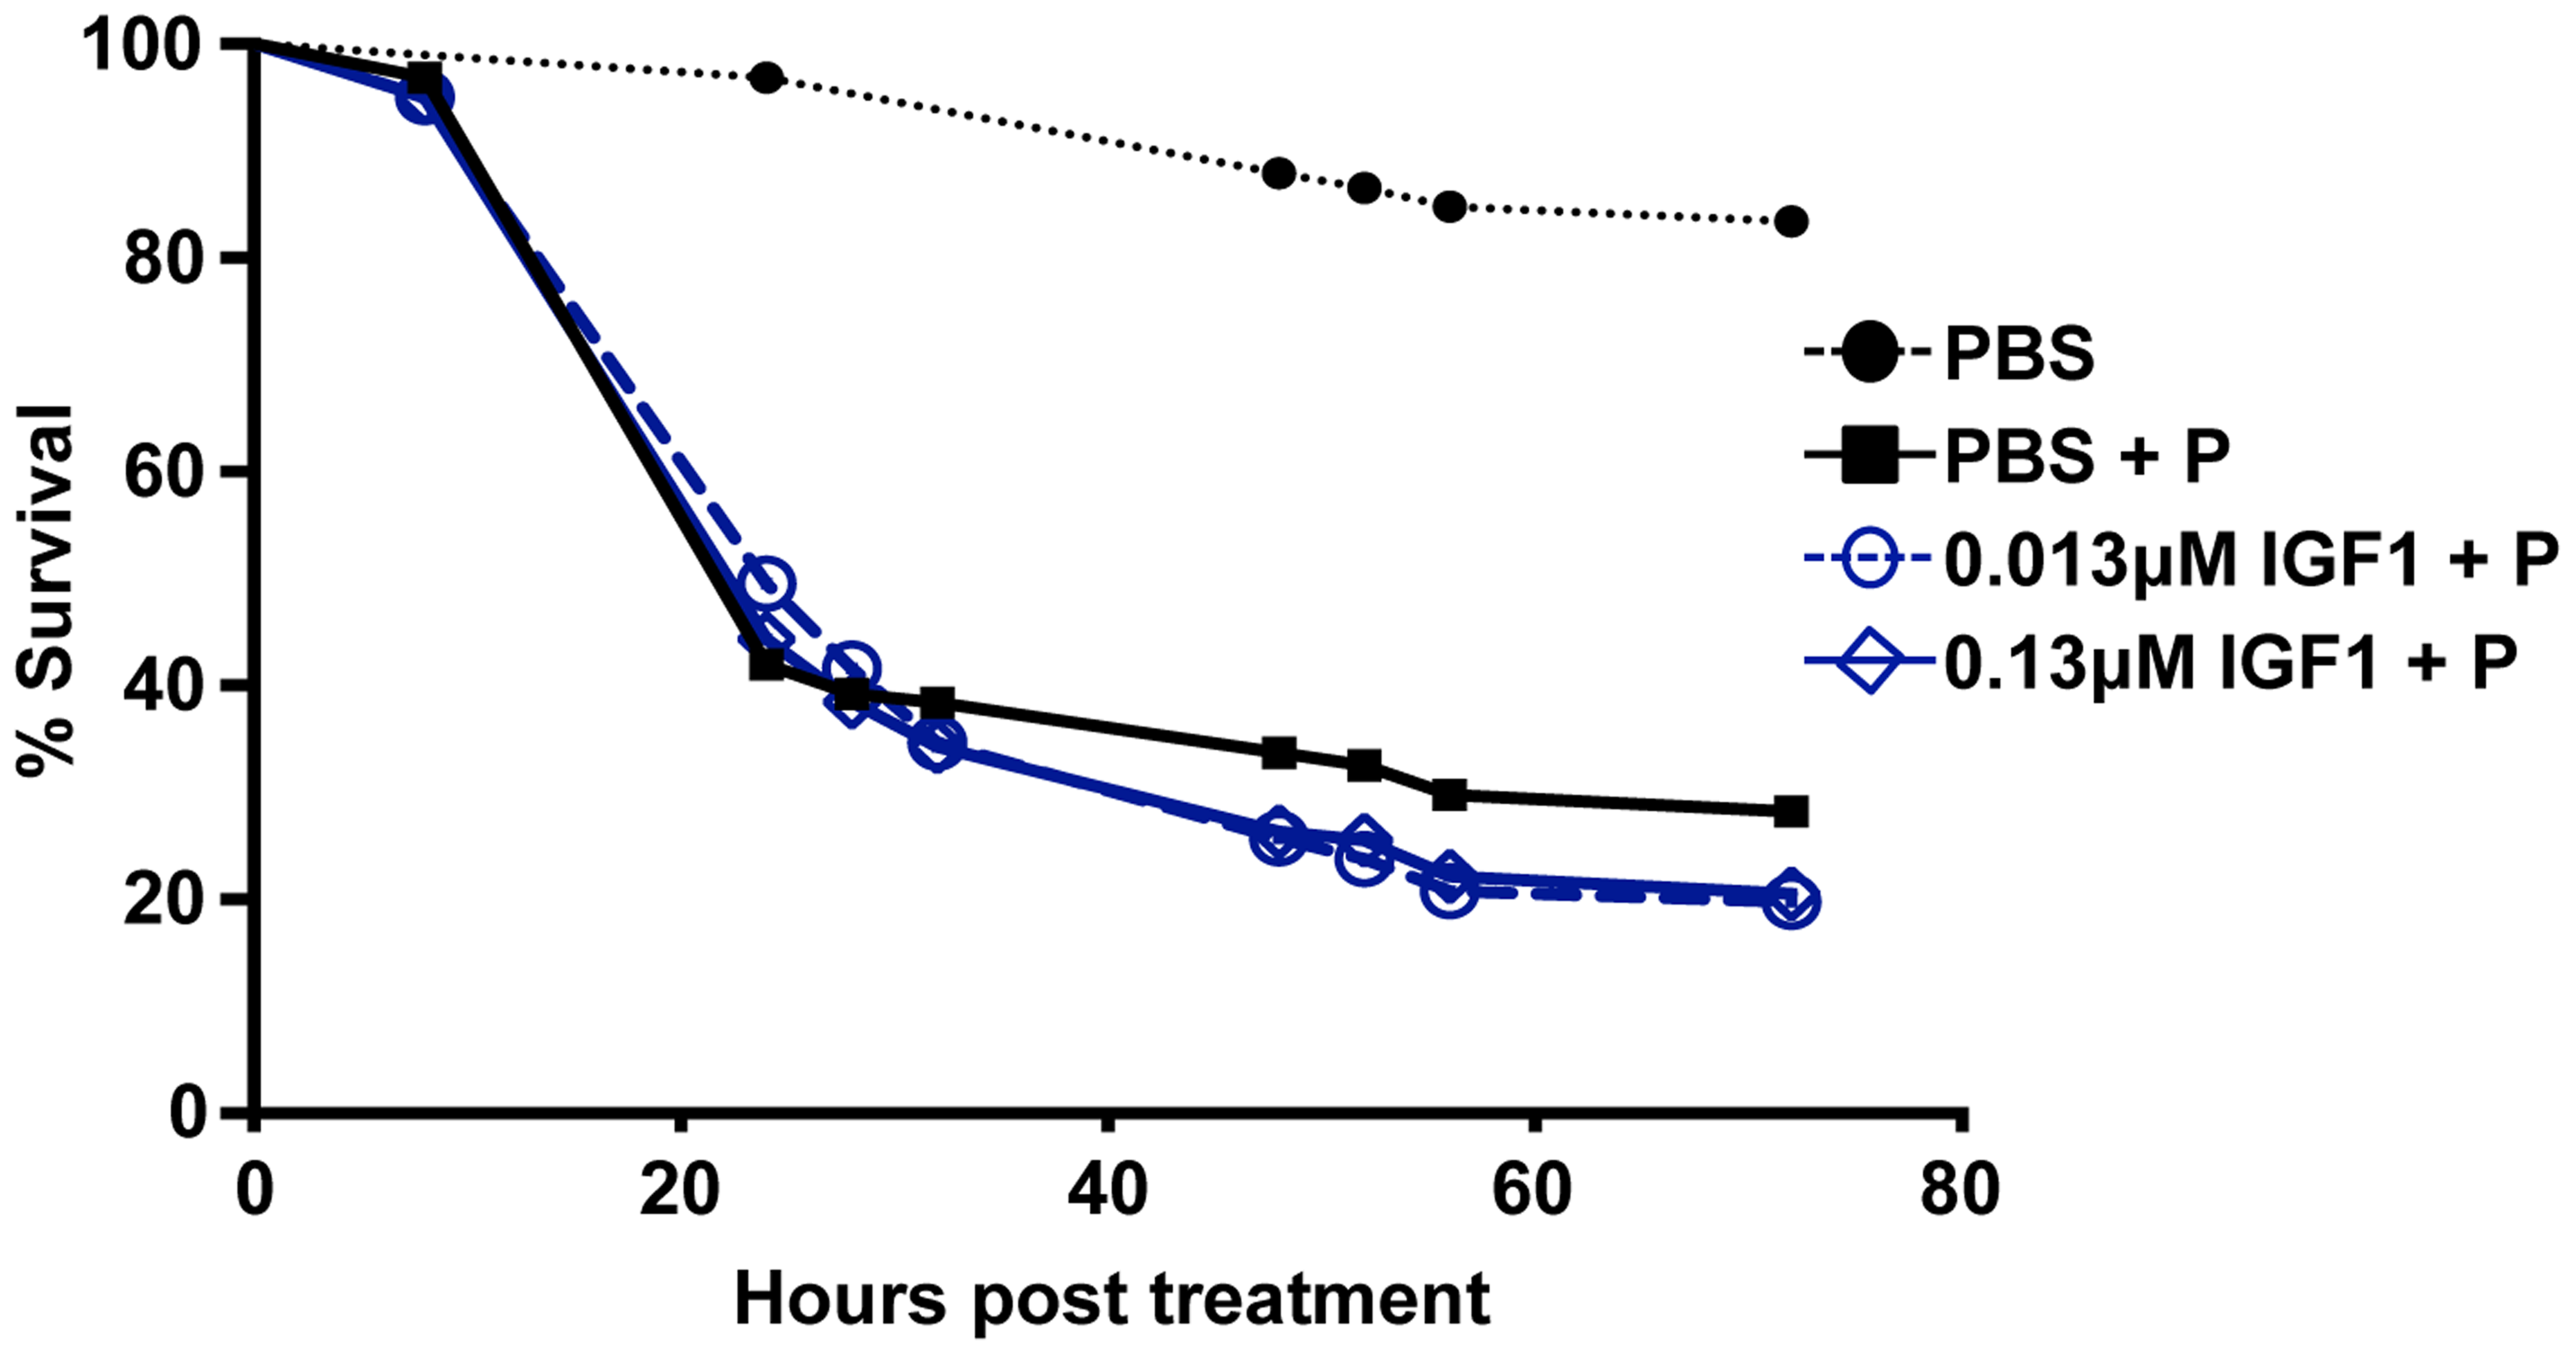 Effect of low dose IGF1 on <i>A. stephensi</i> survivorship was ablated by enhanced oxidative stress.